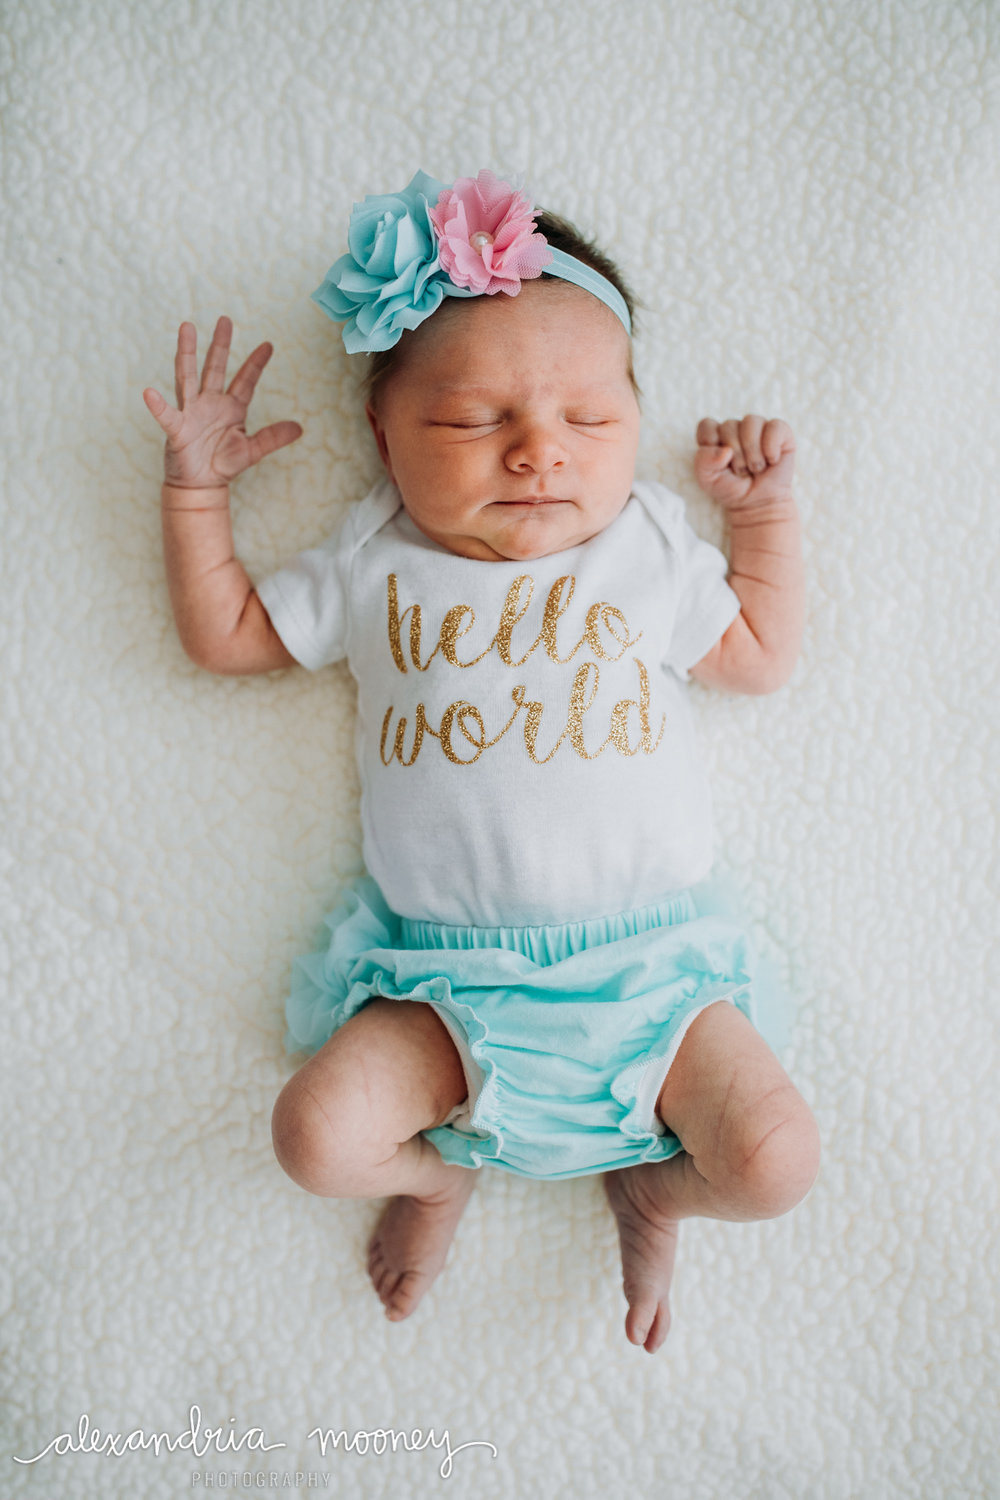 Hannah-Newborn_Watermarked-28.jpg